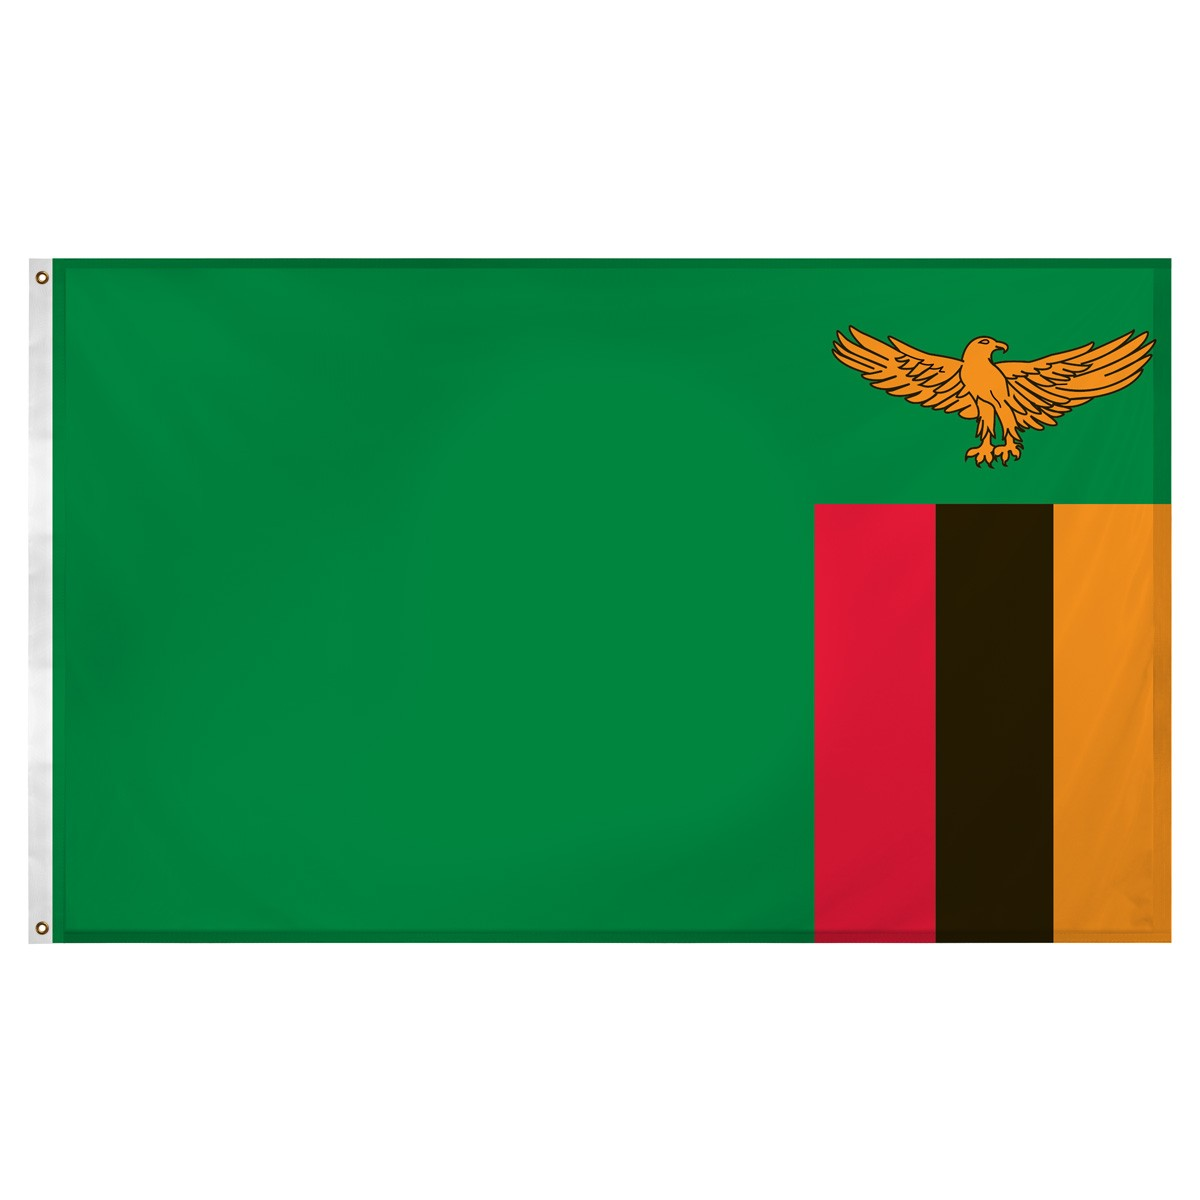 3 39 x 5 39 nylon zambia flag. Black Bedroom Furniture Sets. Home Design Ideas